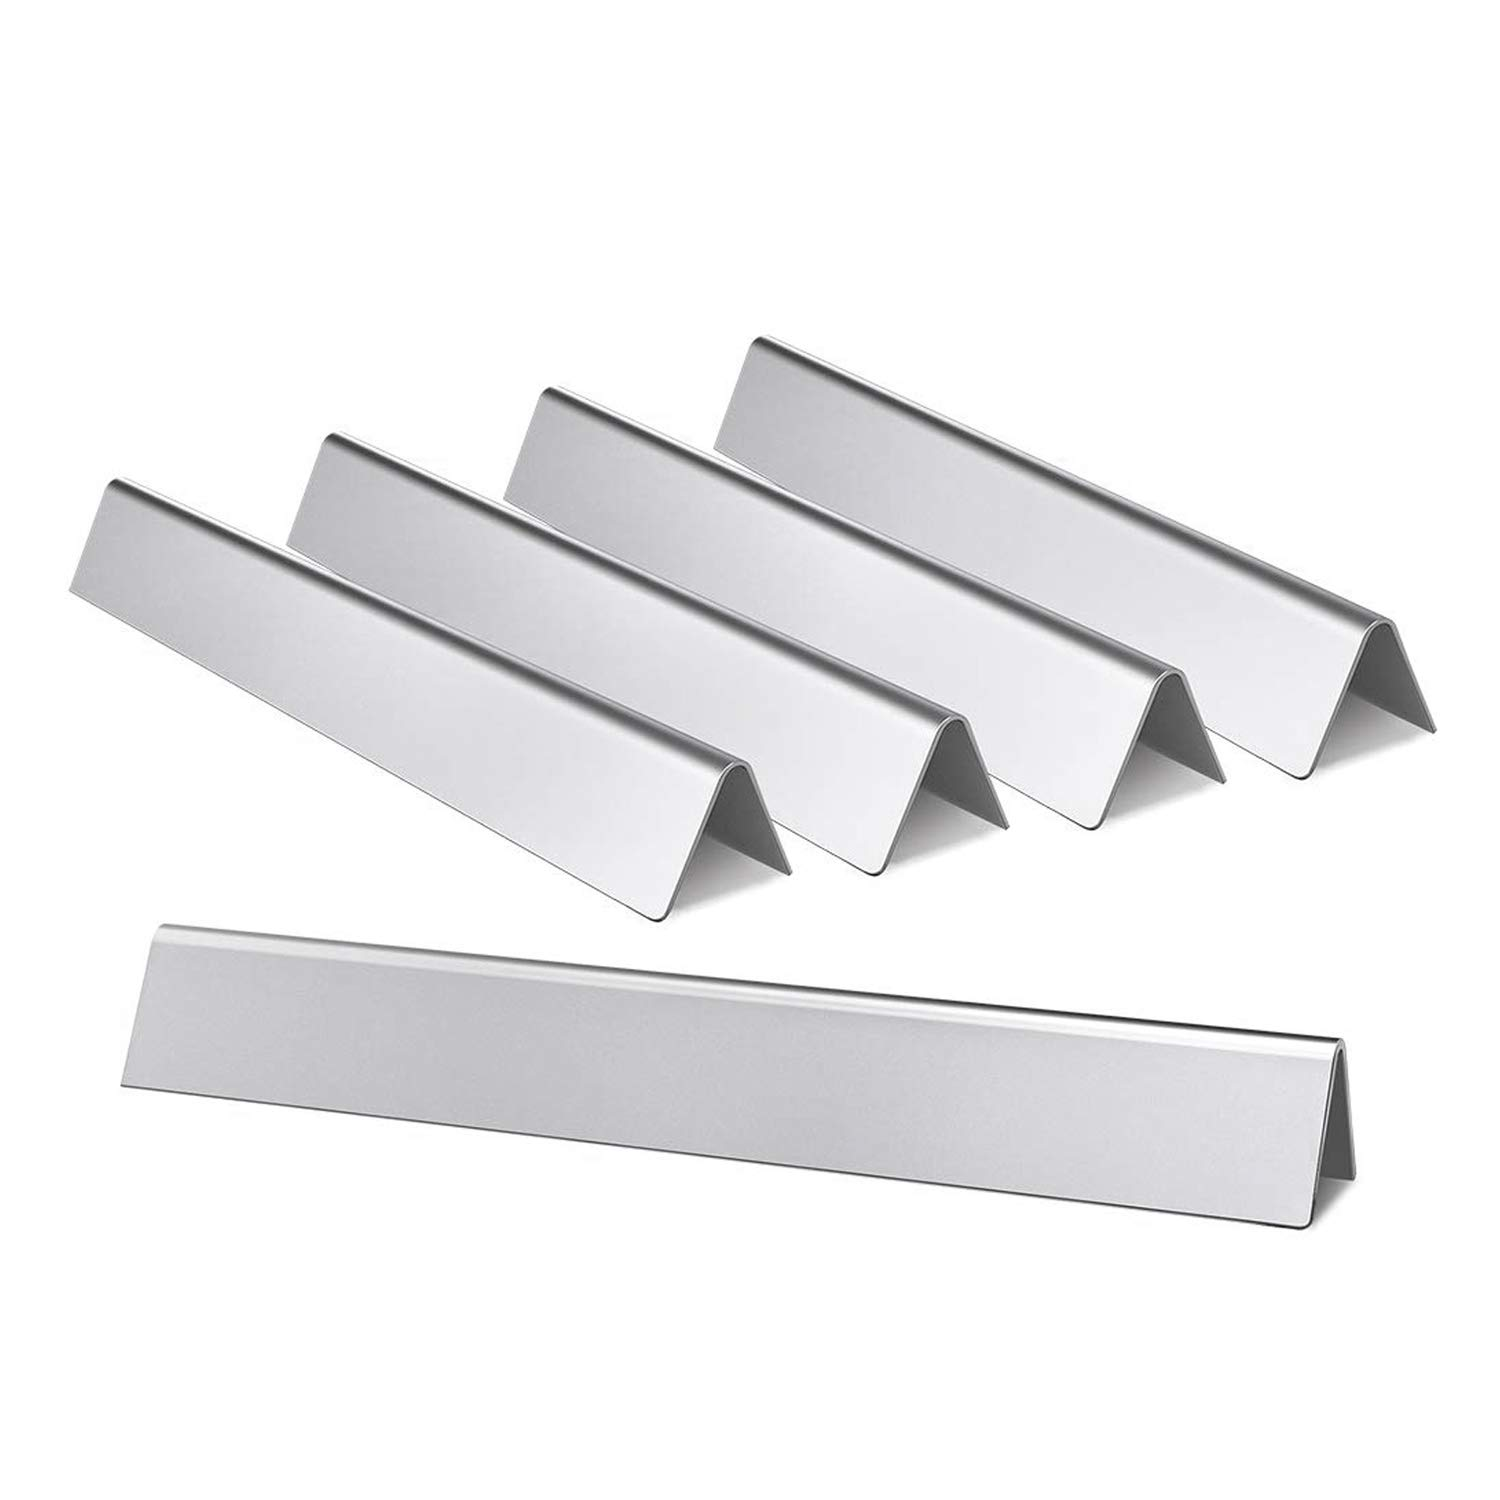 Hongso 7539 7540 24.5 Inch Stainless Steel Flavorizer Bars Replacement for Weber Genesis 300 Series E-310, E-320, S-310, S-320 (with Side-Controls Panel) Heat Deflectors 5-Pack 20 Gauge by Hongso